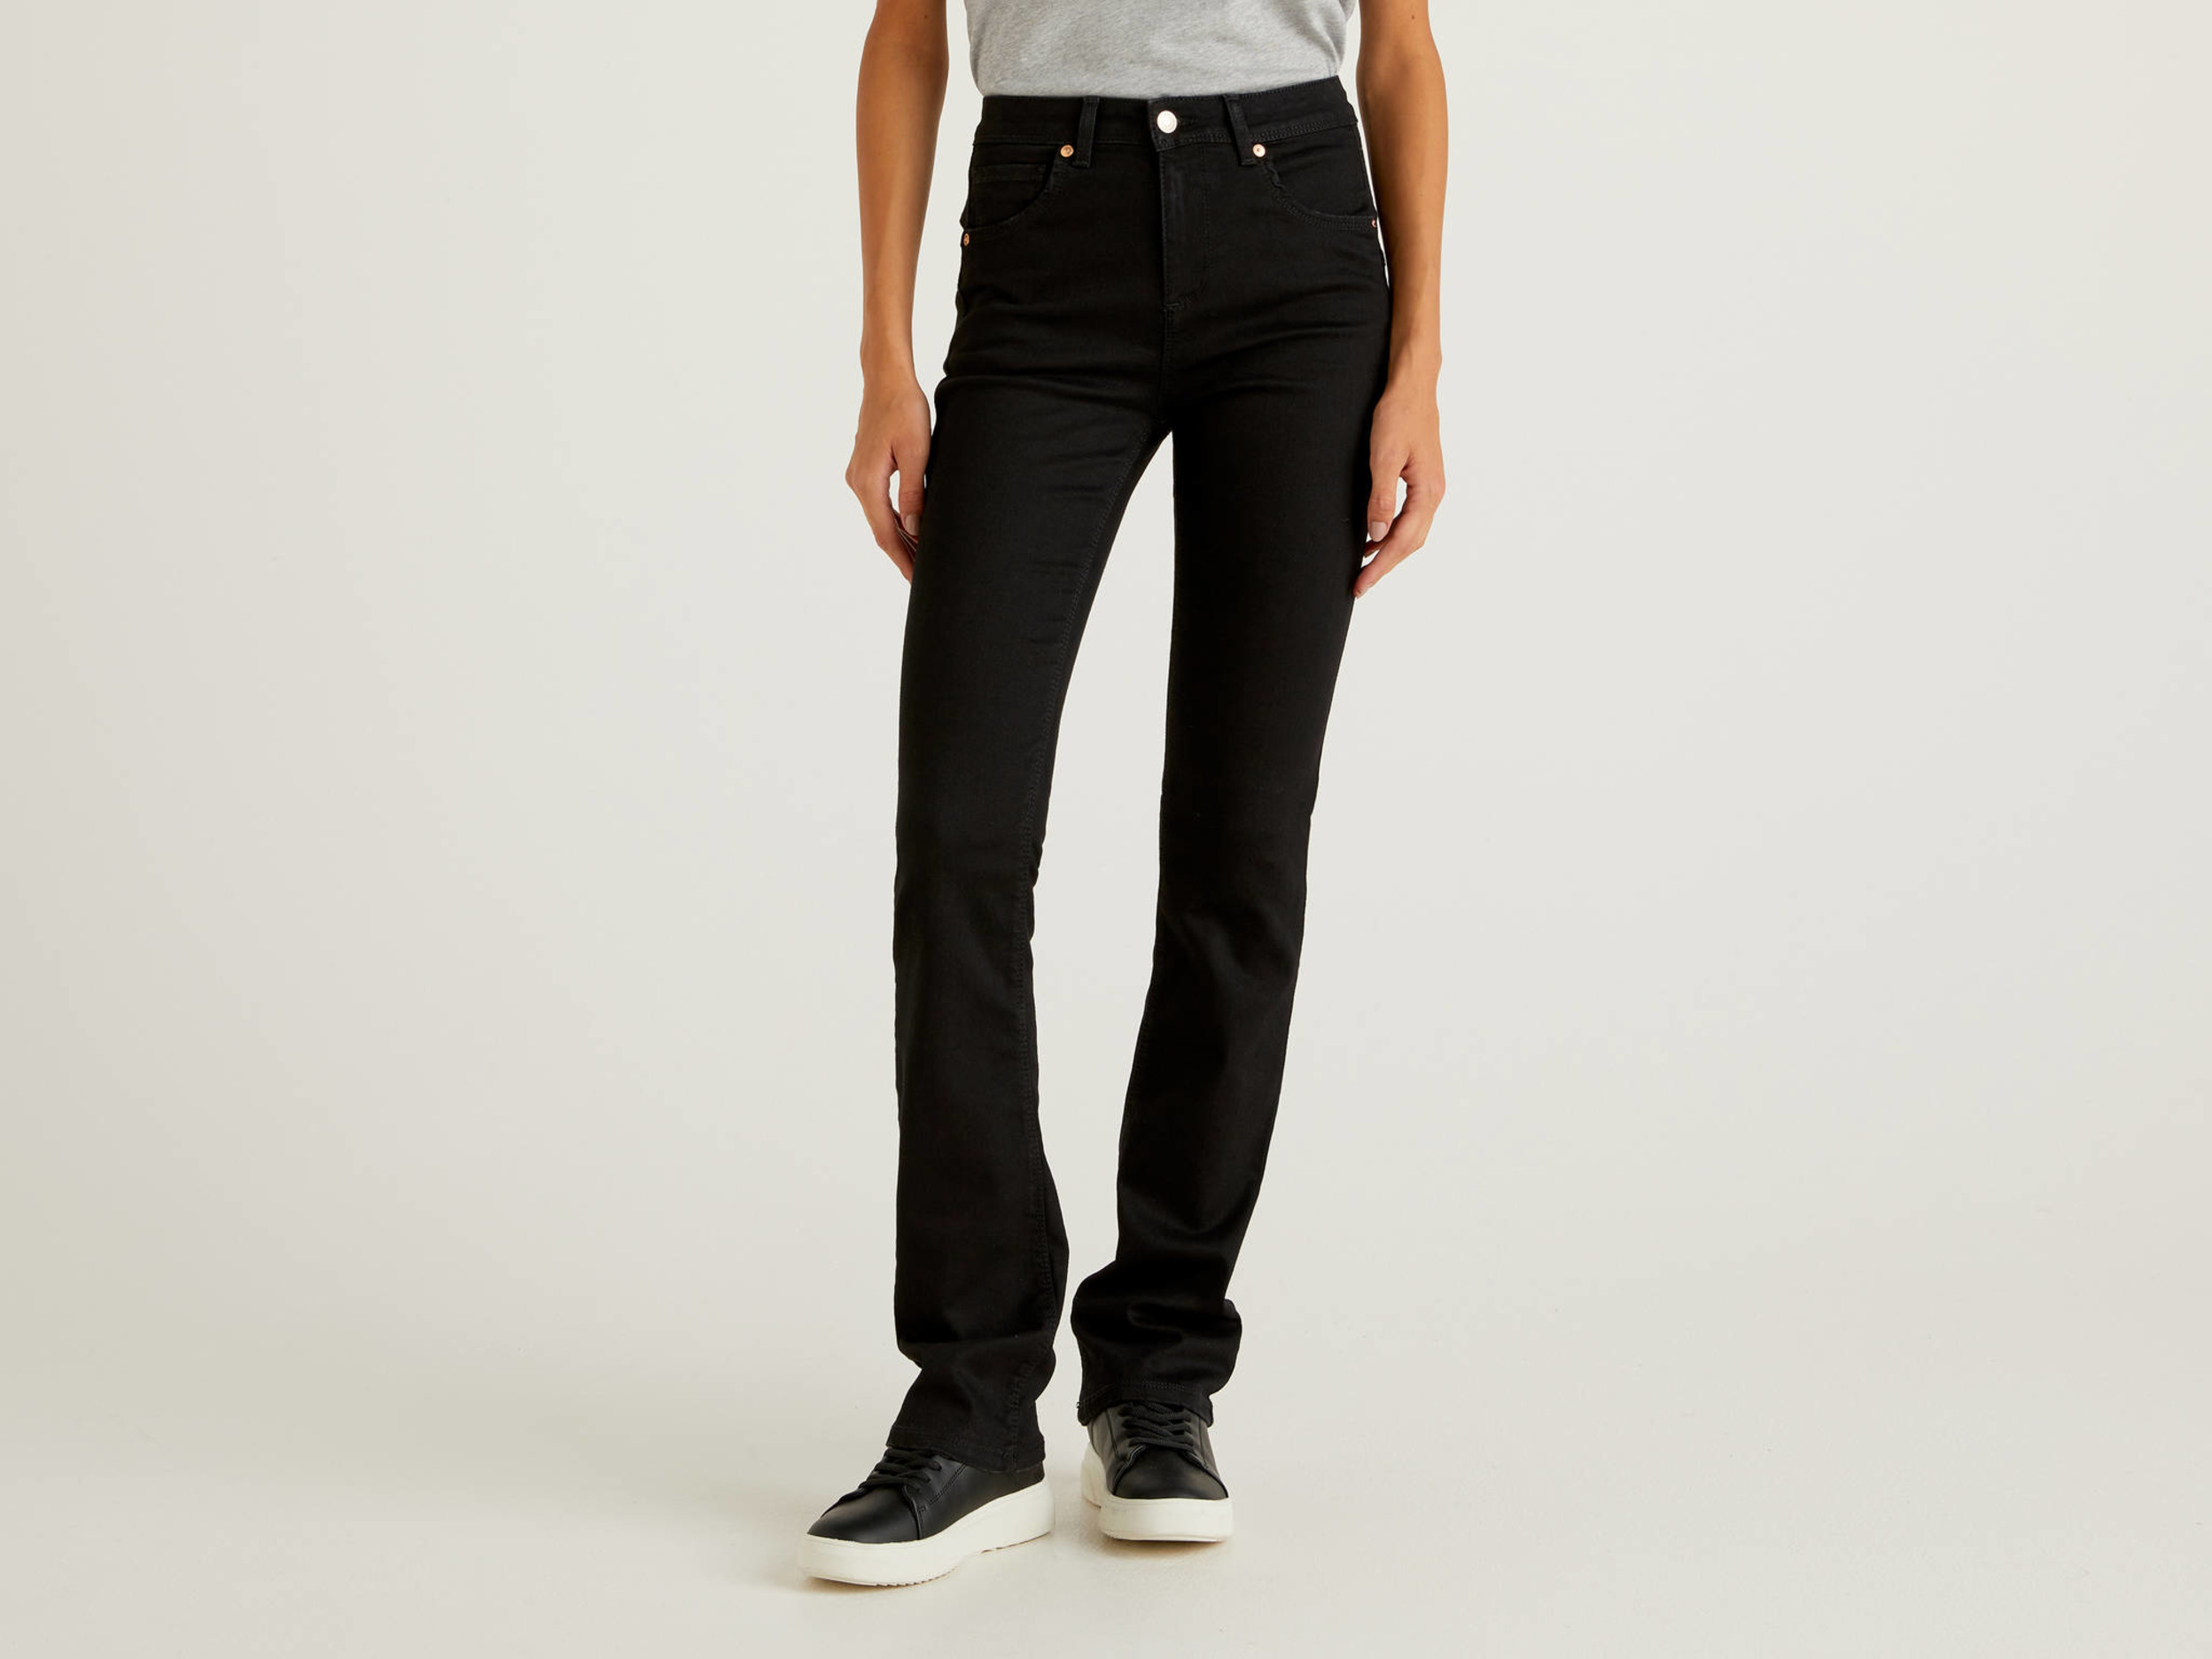 Benetton, Jeans Bootcut Push Up, Nero, Donna